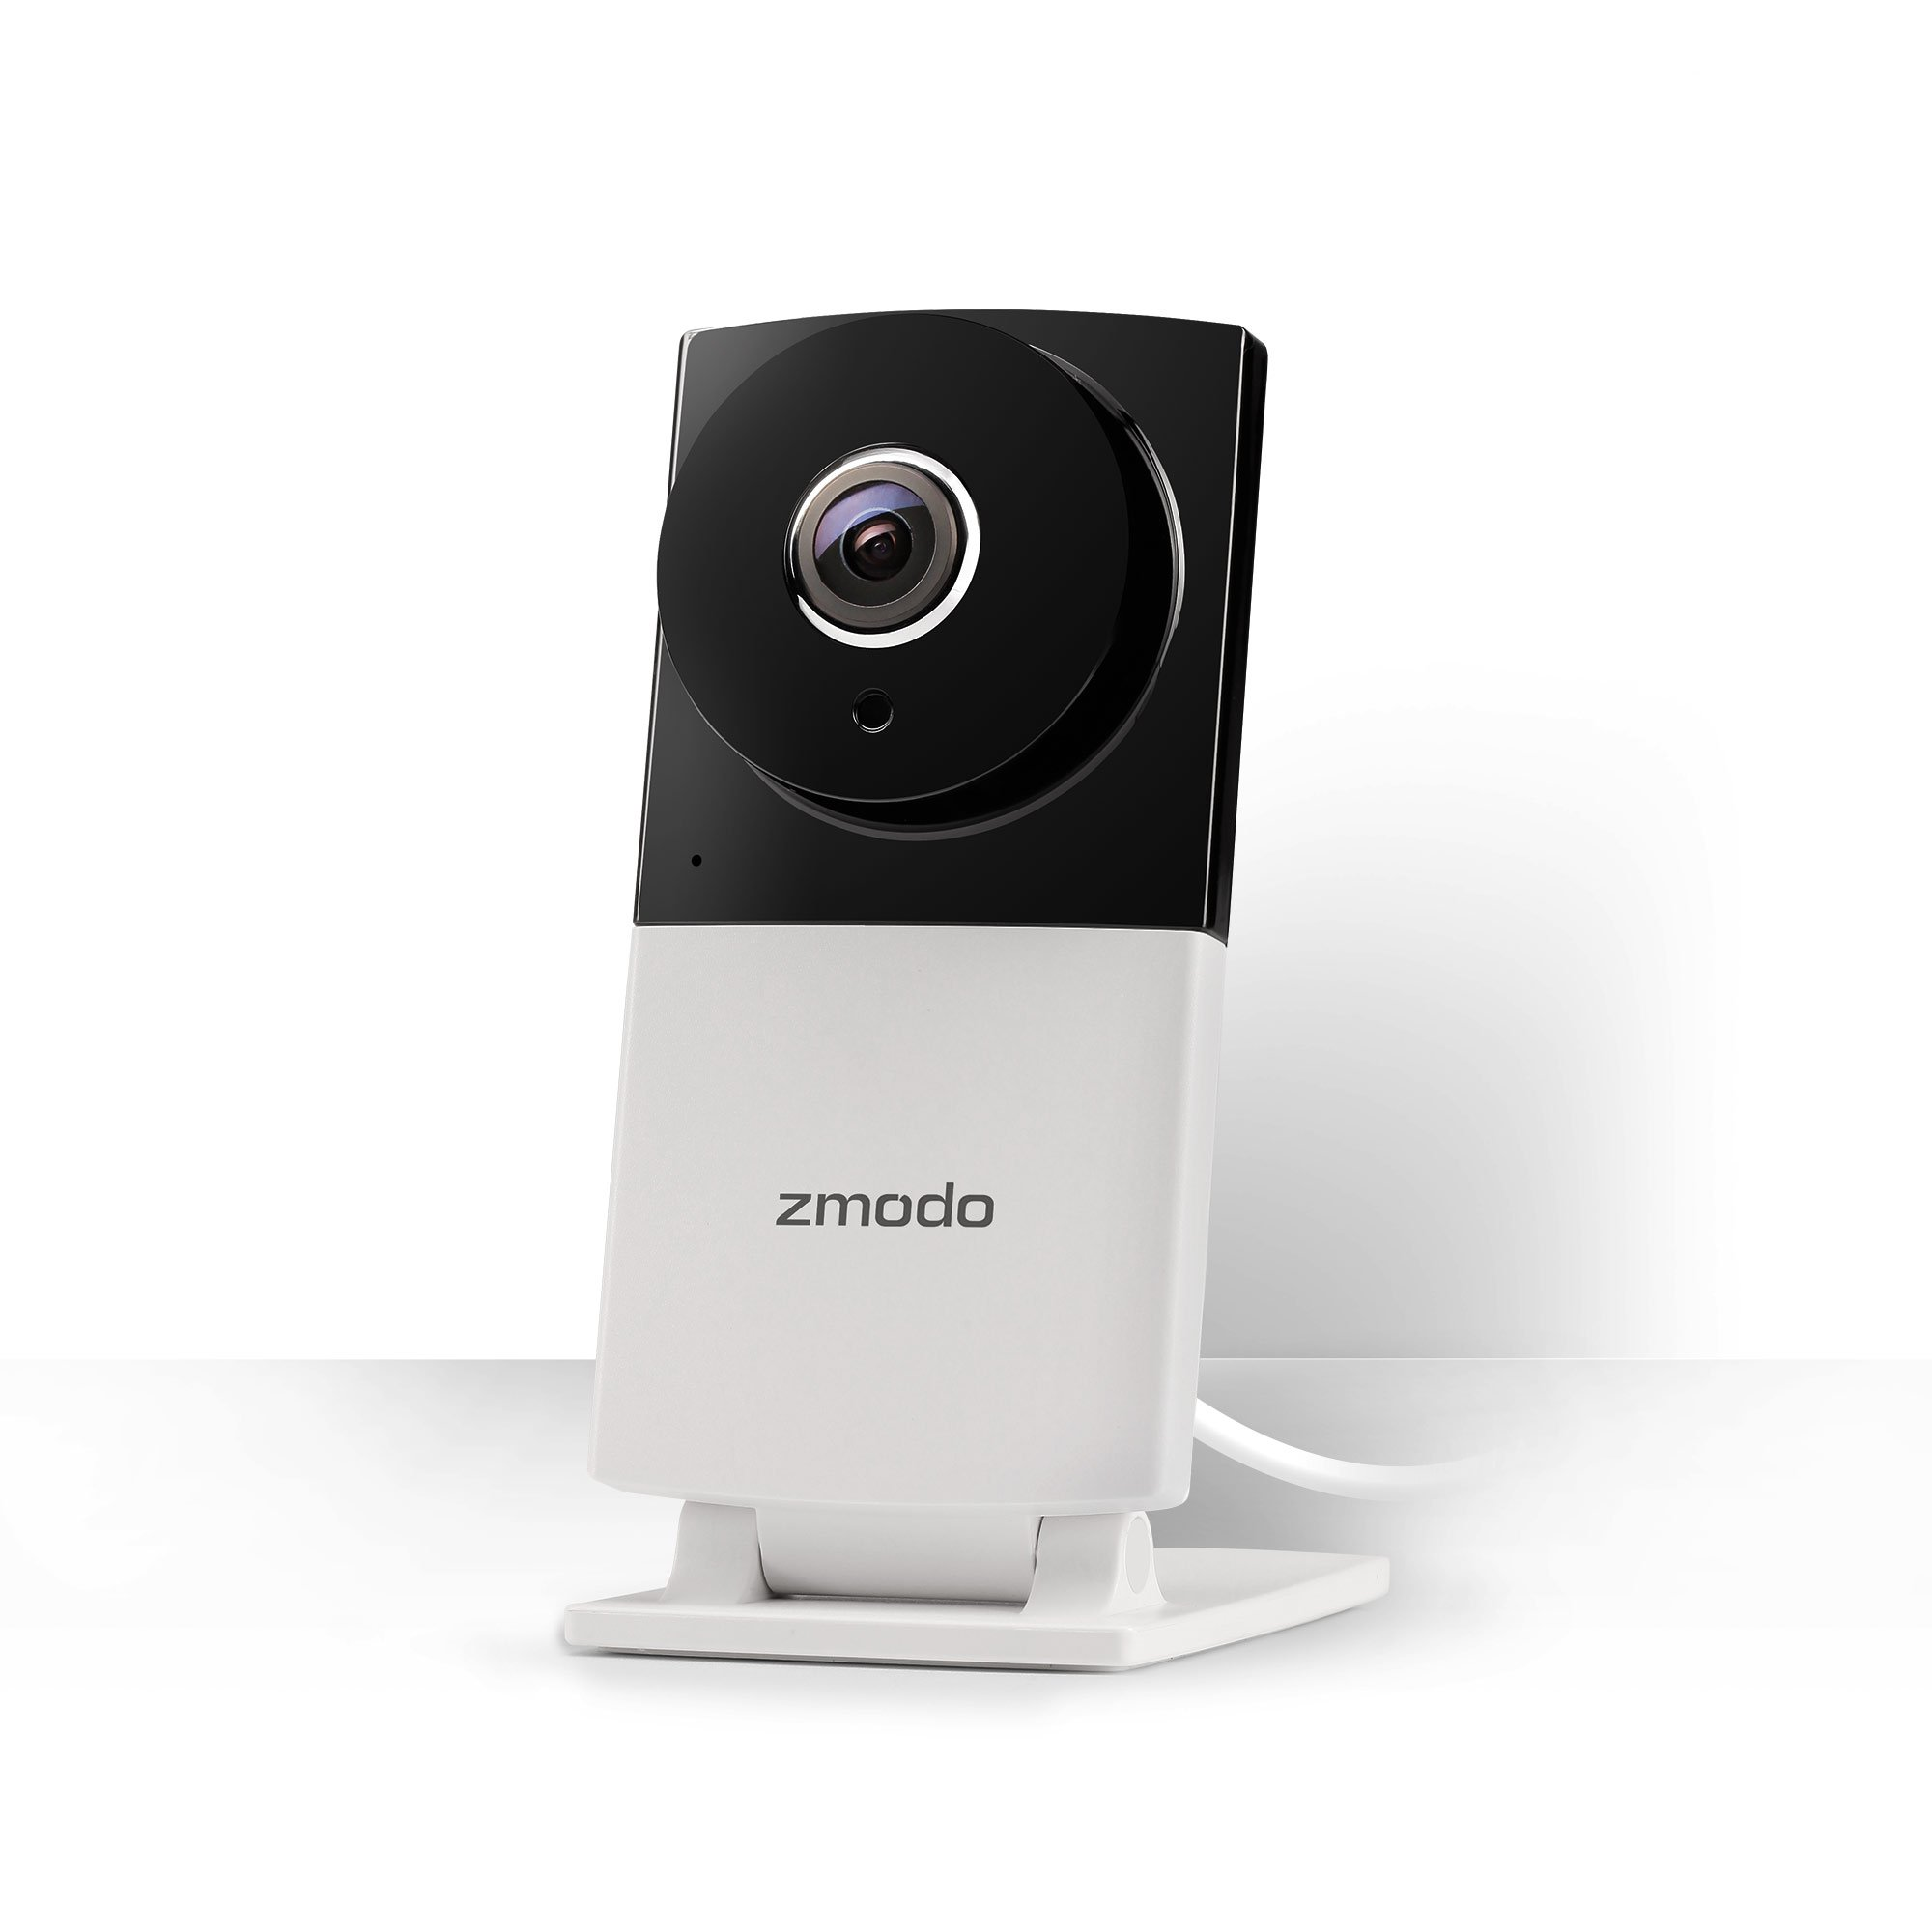 Zmodo Sight 180 C Wireless Home Camera, WiFi IP Security Surveillance Camera System With 1080P Full HD Image, 180°Super Wide Viewing Angle, Night Vision, Two Way Audio - Works with Alexa